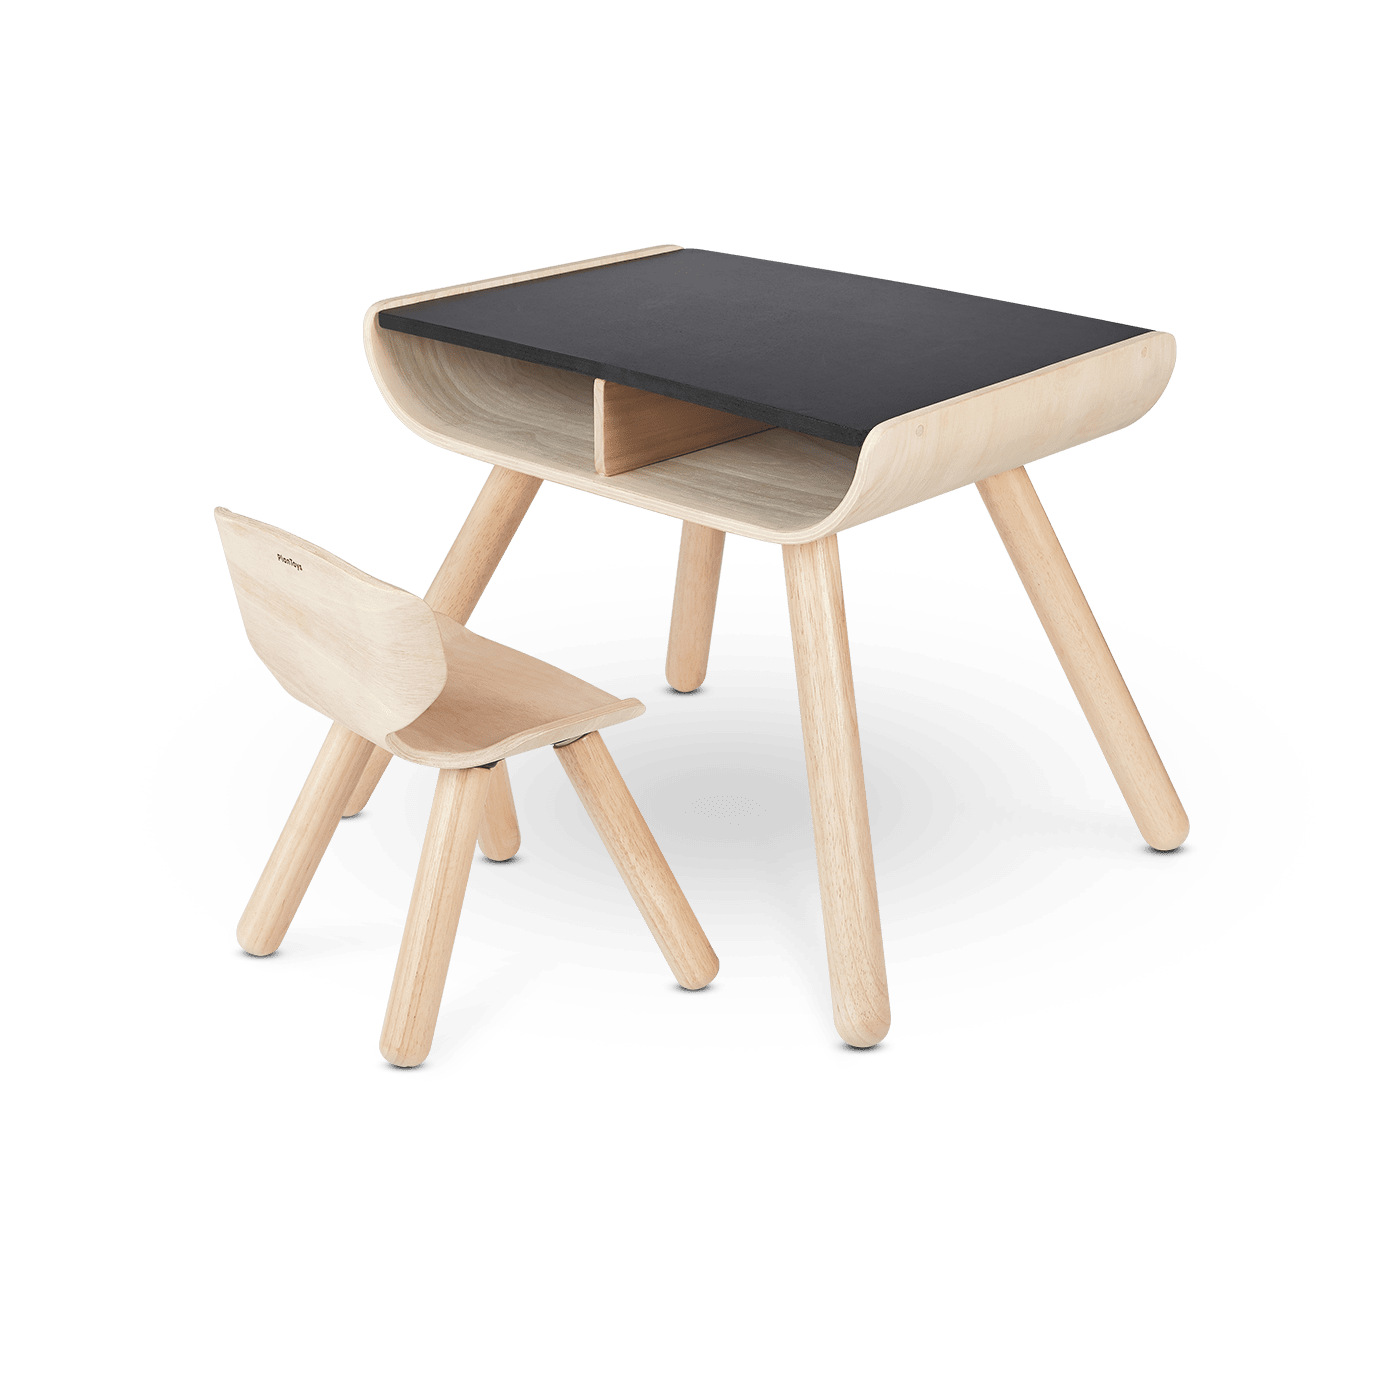 8703_PlanToys_TABLE_and_CHAIR_-_BLACK_PlanHome™_3yrs_Wooden_toys_Education_toys_Safety_Toys_Non-toxic_0.png